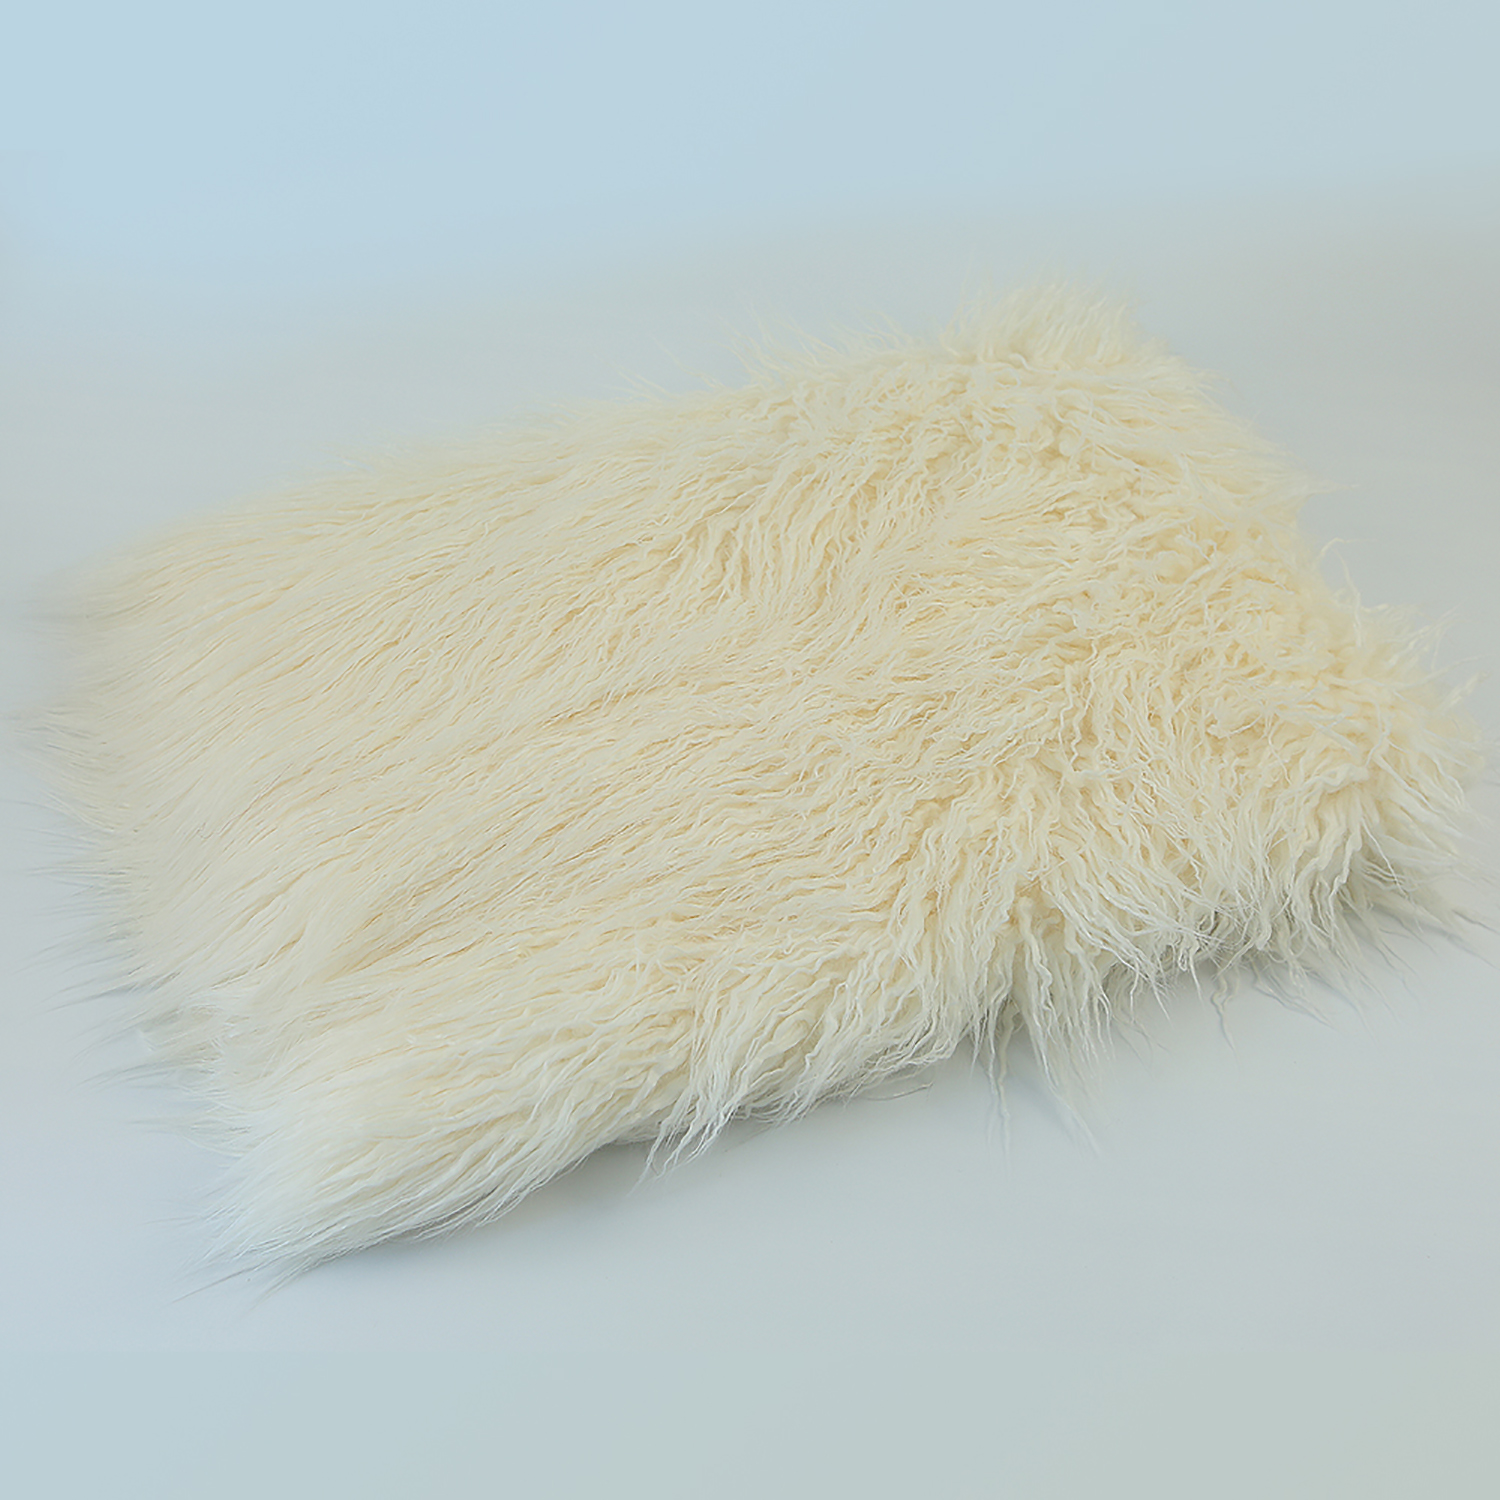 Don&Judy 150X100cm Faux Fur and Basket Nest Sets Photography Photo Prop Newborn Blanket Background Backdrop Rug Photo Prop